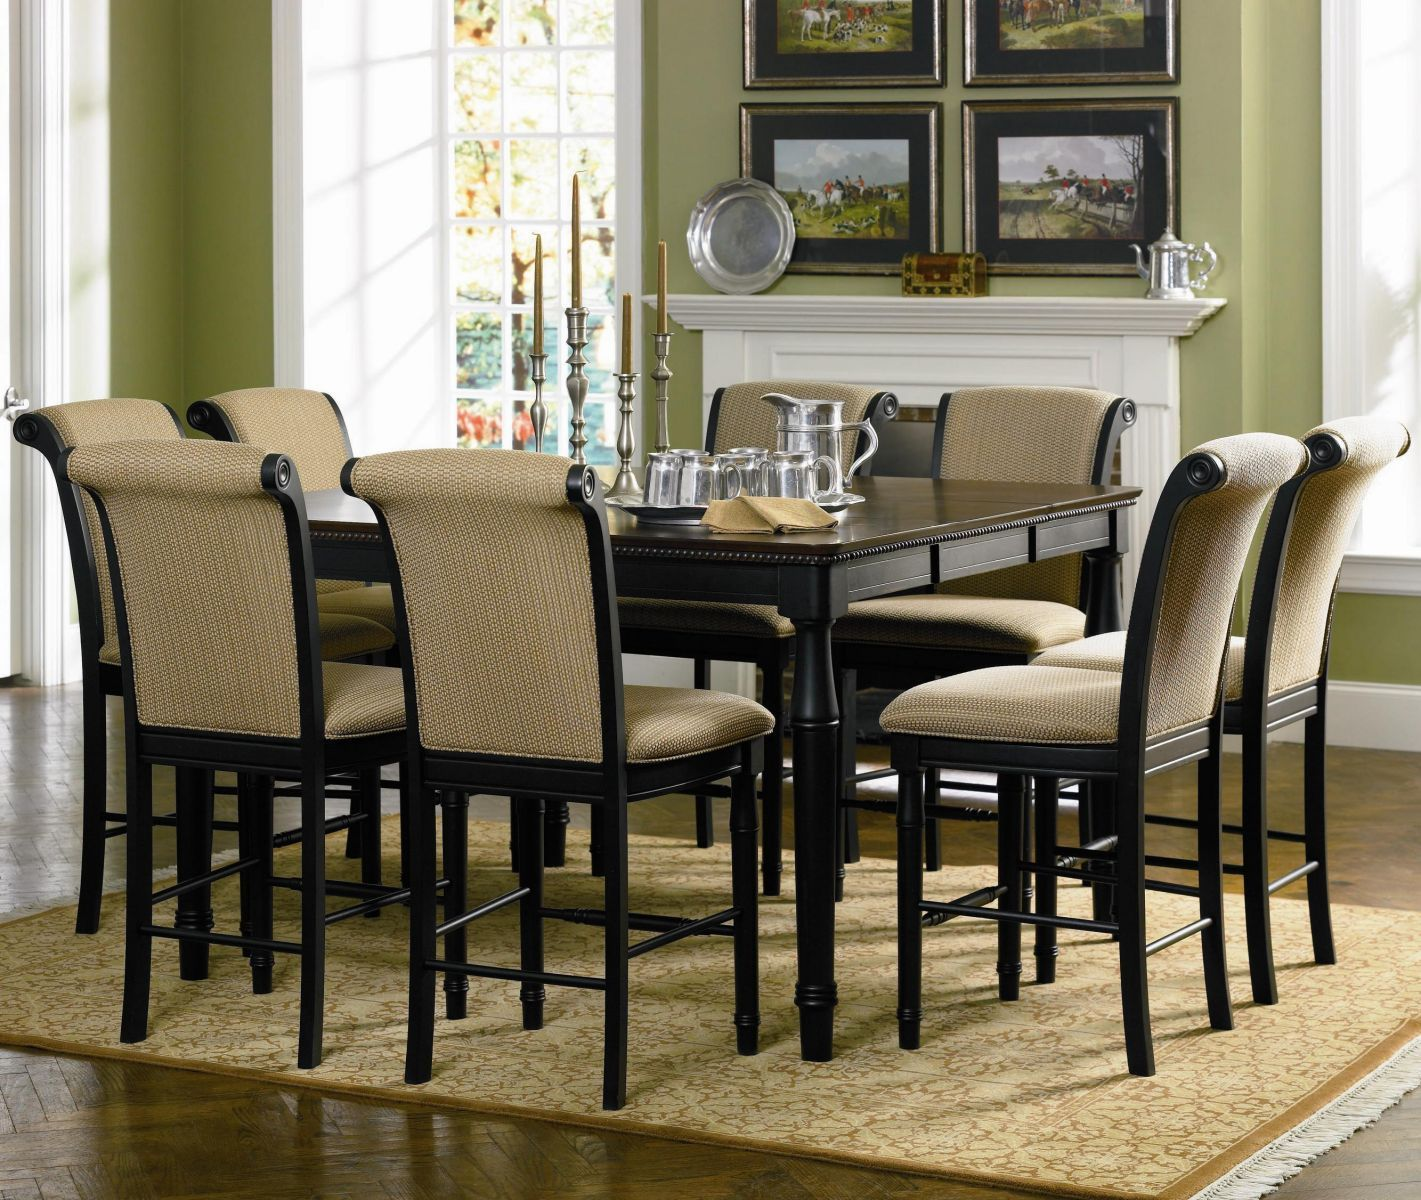 Coaster Dining Room Set Price Upon Request Call (631) 742-1351 for Best Price Guarantee Dinette Sets New York , Dinette Sets Long Island , Dining Room Sets New York , Dining Room Sets Long Island, Dining Room Chairs Long Island The Edgewood collection has